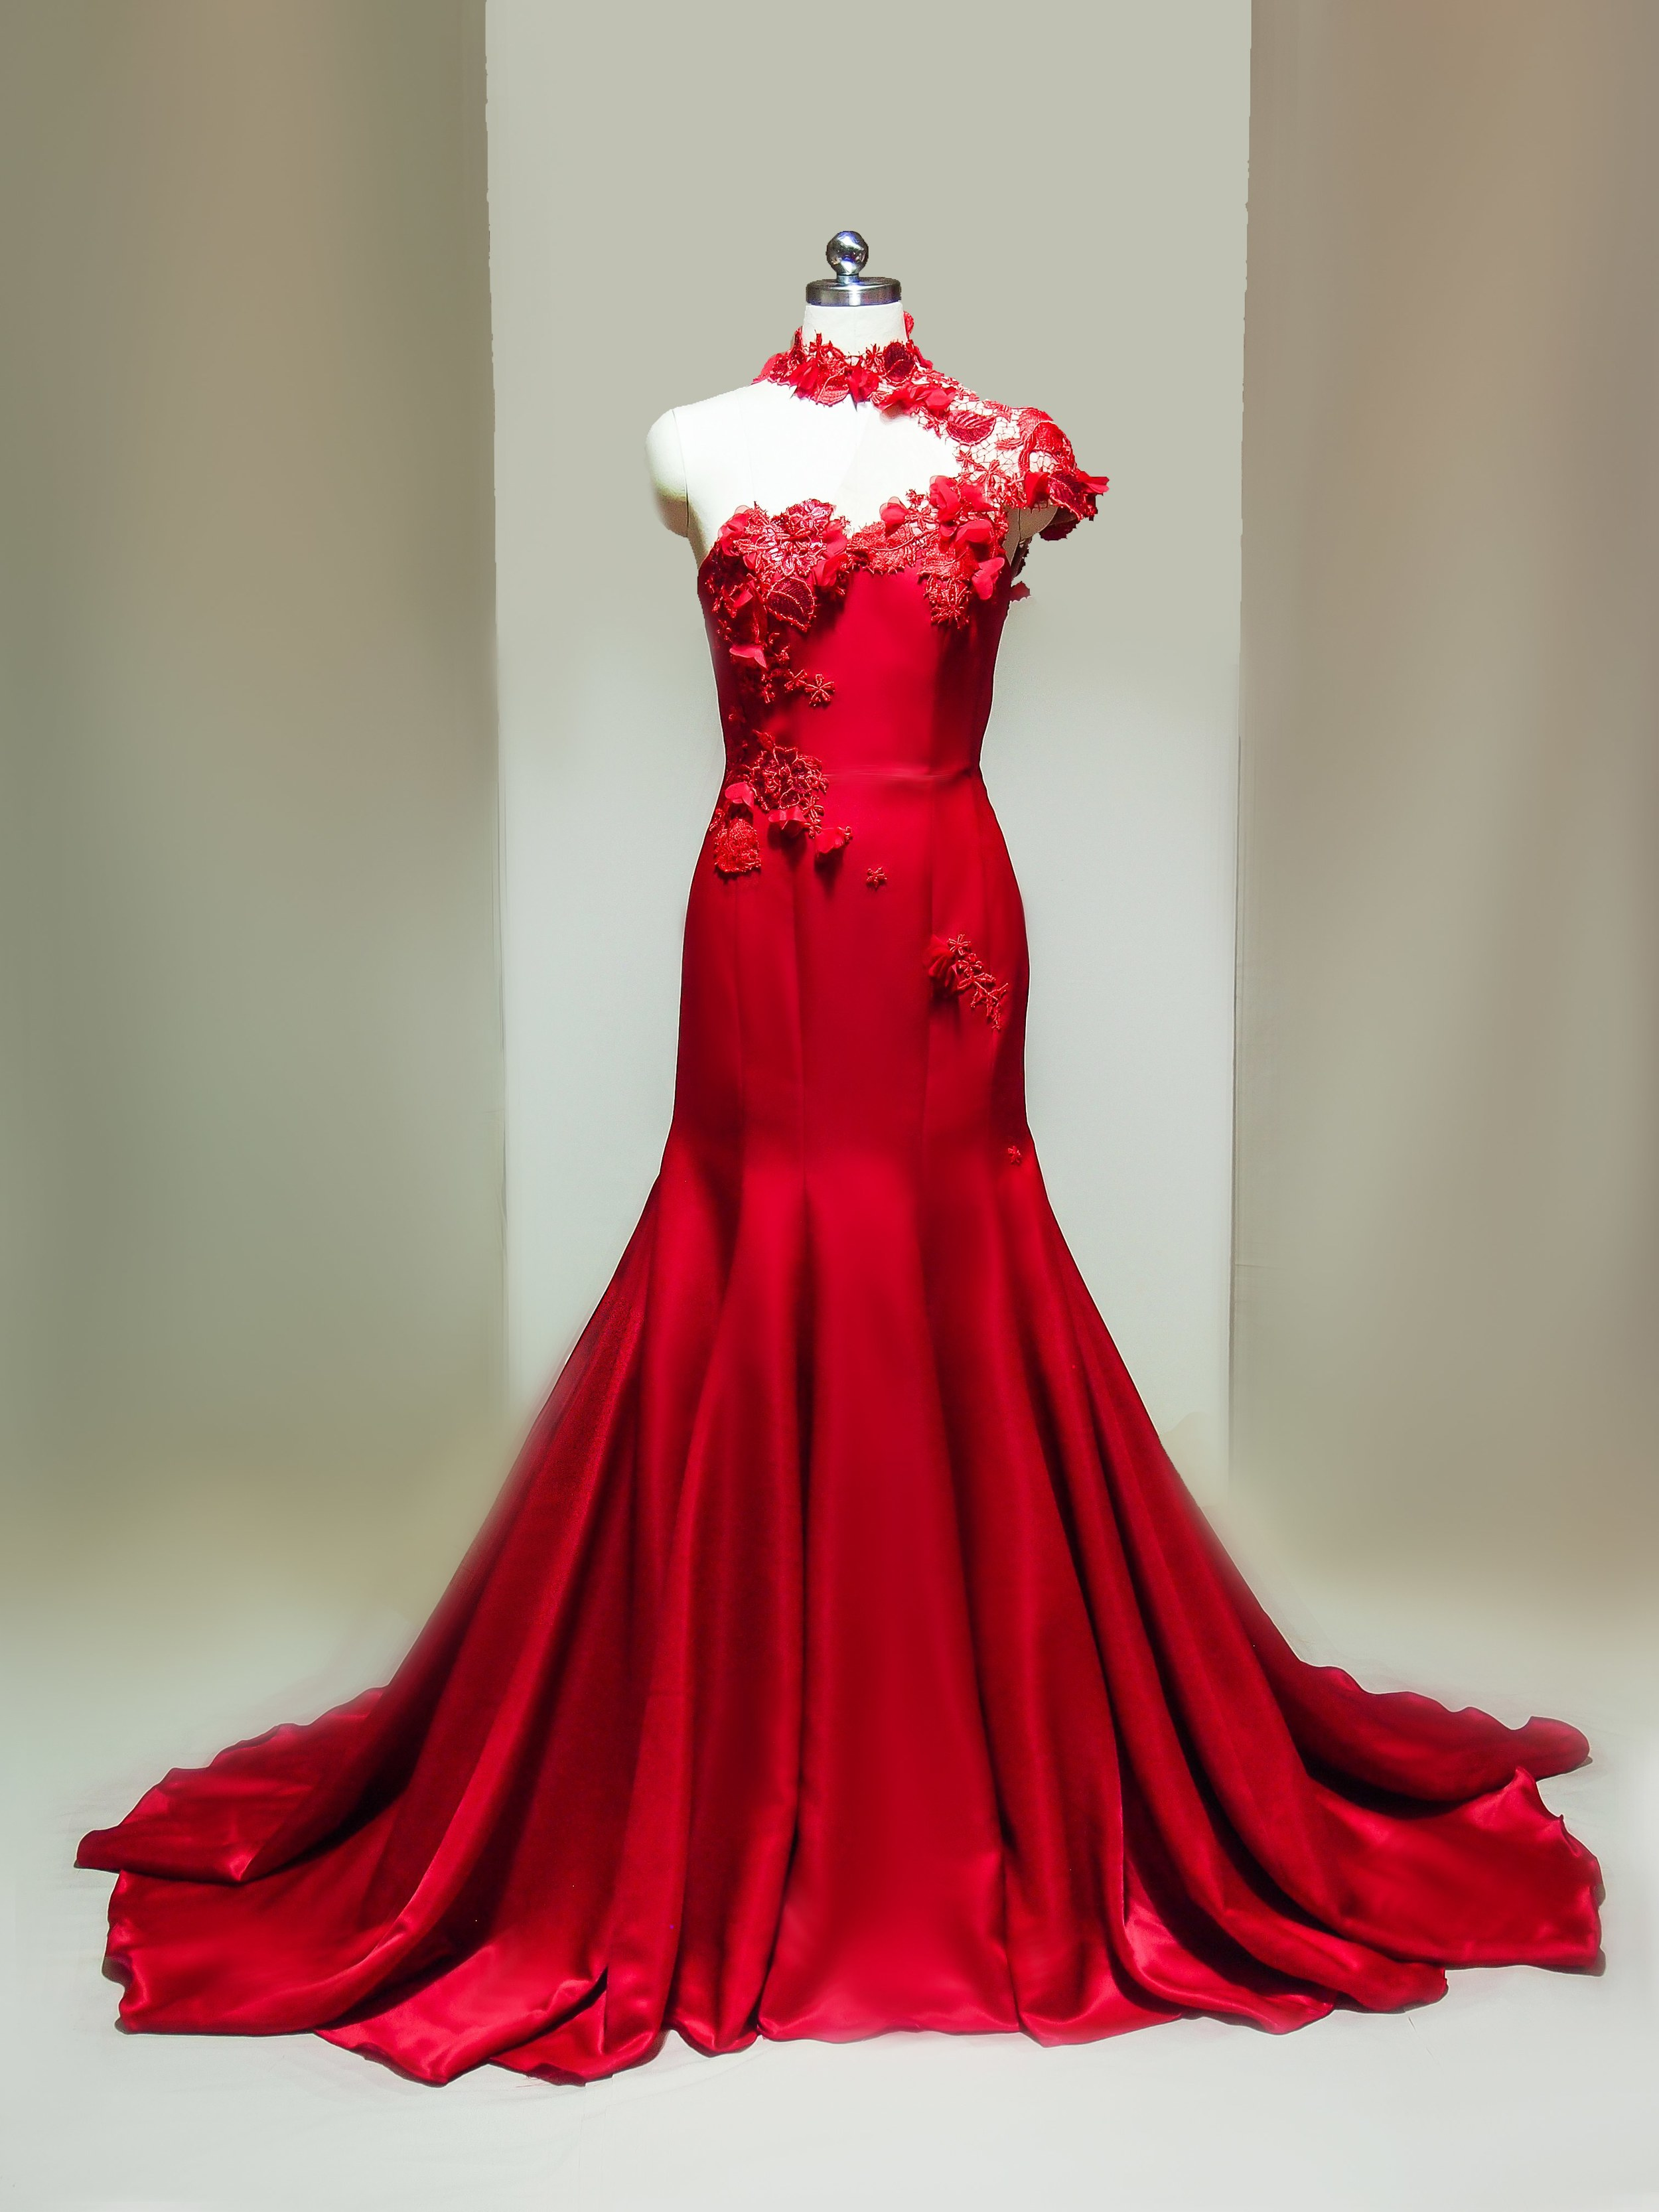 """Luxurious fit and flare gown reveals a look of elegance meets allurement, enhanced with lively details to accentuate a woman's grace.        mily:auto; mso-font-pitch:variable; mso-font-signature:3 0 0 0 1 0;} @font-face {font-family:""""MS 明朝""""; panose-1:0 0 0 0 0 0 0 0 0 0; mso-font-charset:128; mso-generic-font-family:roman; mso-font-format:other; mso-font-pitch:fixed; mso-font-signature:1 134676480 16 0 131072 0;} @font-face {font-family:""""Cambria Math""""; panose-1:2 4 5 3 5 4 6 3 2 4; mso-font-charset:1; mso-generic-font-family:roman; mso-font-format:other; mso-font-pitch:variable; mso-font-signature:0 0 0 0 0 0;} @font-face {font-family:Cambria; panose-1:2 4 5 3 5 4 6 3 2 4; mso-font-charset:0; mso-generic-font-family:auto; mso-font-pitch:variable; mso-font-signature:3 0 0 0 1 0;}  /* Style Definitions */ p.MsoNormal, li.MsoNormal, div.MsoNormal {mso-style-unhide:no; mso-style-qformat:yes; mso-style-parent:""""""""; margin:0cm; margin-bottom:.0001pt; mso-pagination:widow-orphan; font-size:12.0pt; font-family:Cambria; mso-ascii-font-family:Cambria; mso-ascii-theme-font:minor-latin; mso-fareast-font-family:""""MS 明朝""""; mso-fareast-theme-font:minor-fareast; mso-hansi-font-family:Cambria; mso-hansi-theme-font:minor-latin; mso-bidi-font-family:""""Times New Roman""""; mso-bidi-theme-font:minor-bidi;} .MsoChpDefault {mso-style-type:export-only; mso-default-props:yes; font-family:Cambria; mso-ascii-font-family:Cambria; mso-ascii-theme-font:minor-latin; mso-fareast-font-family:""""MS 明朝""""; mso-fareast-theme-font:minor-fareast; mso-hansi-font-family:Cambria; mso-hansi-theme-font:minor-latin; mso-bidi-font-family:""""Times New Roman""""; mso-bidi-theme-font:minor-bidi;} @page WordSection1 {size:612.0pt 792.0pt; margin:72.0pt 90.0pt 72.0pt 90.0pt; mso-header-margin:36.0pt; mso-footer-margin:36.0pt; mso-paper-source:0;} div.WordSection1 {page:WordSectio   Rhonda  Luxurious fit and flare gown reveals a look of elegance meets allurement, enhanced with lively details to accentuate a woman's grace."""